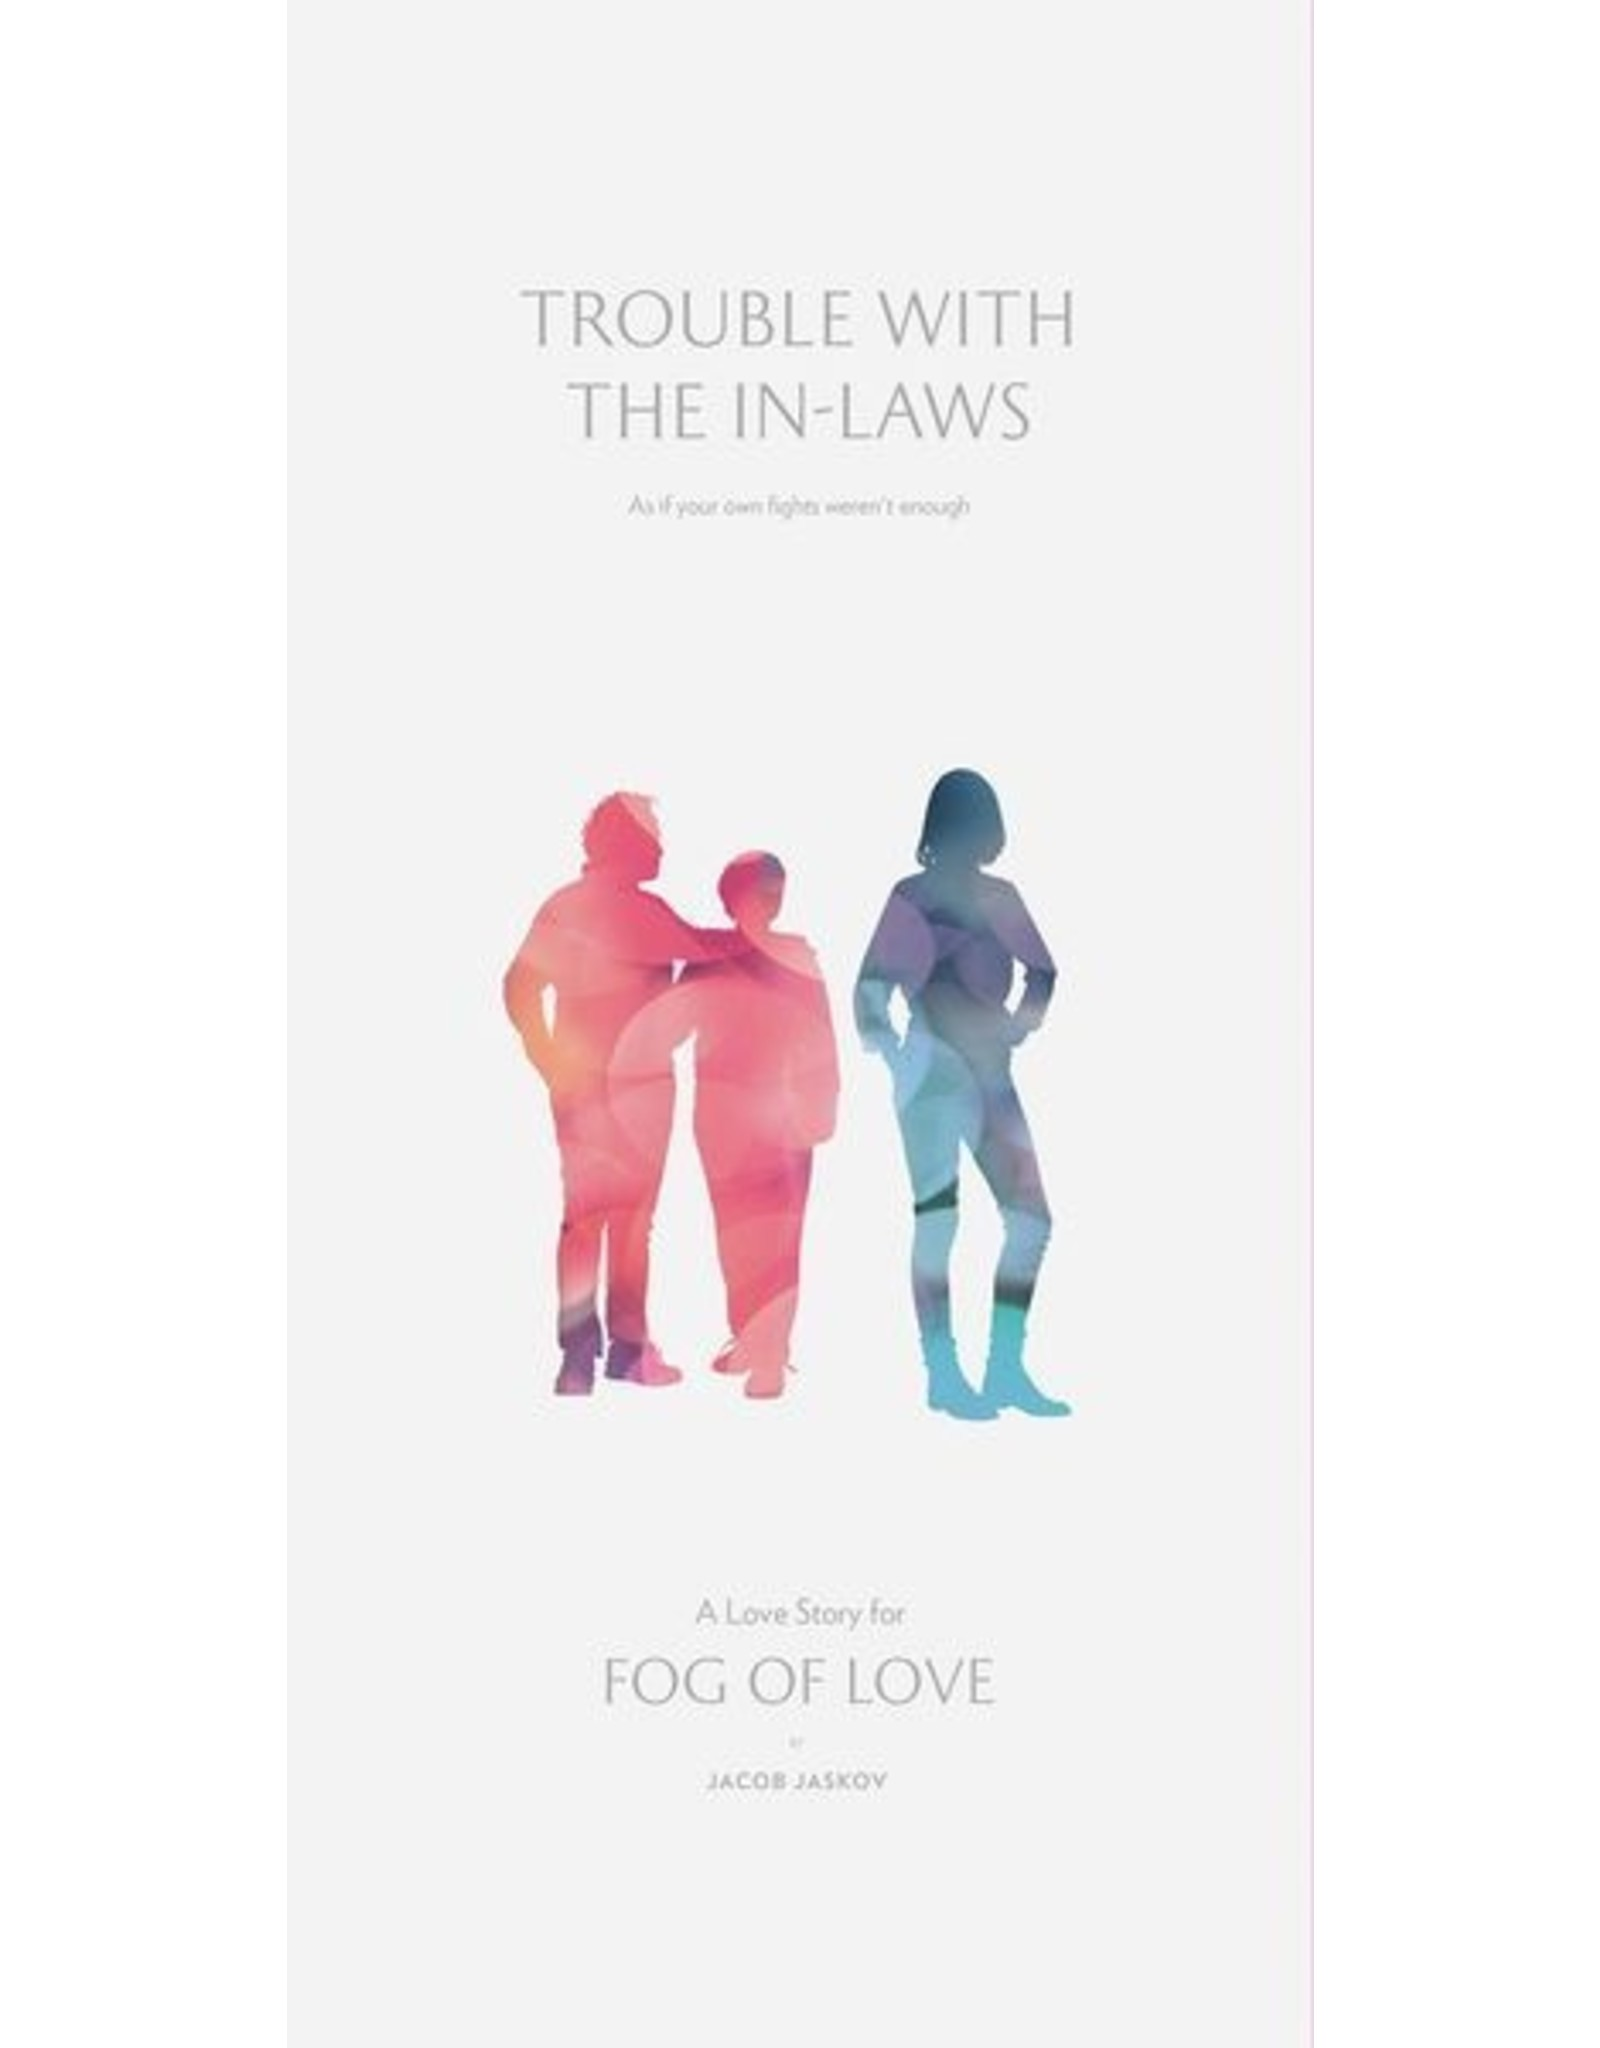 Hush Hush Productions Fog of Love: Trouble with the In-laws